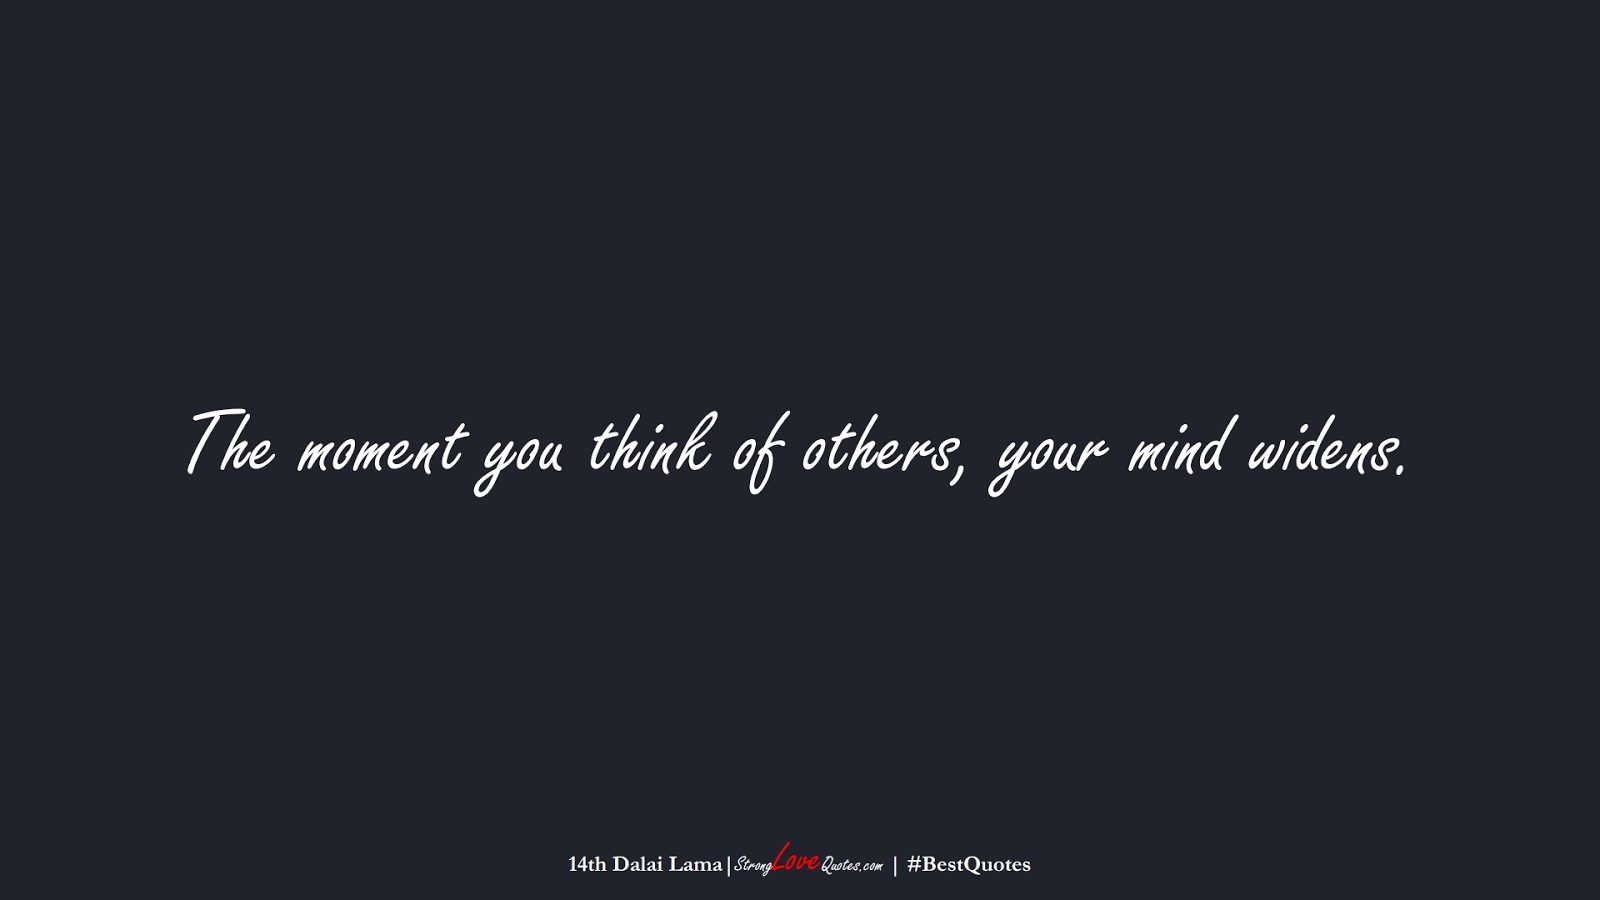 The moment you think of others, your mind widens. (14th Dalai Lama);  #BestQuotes